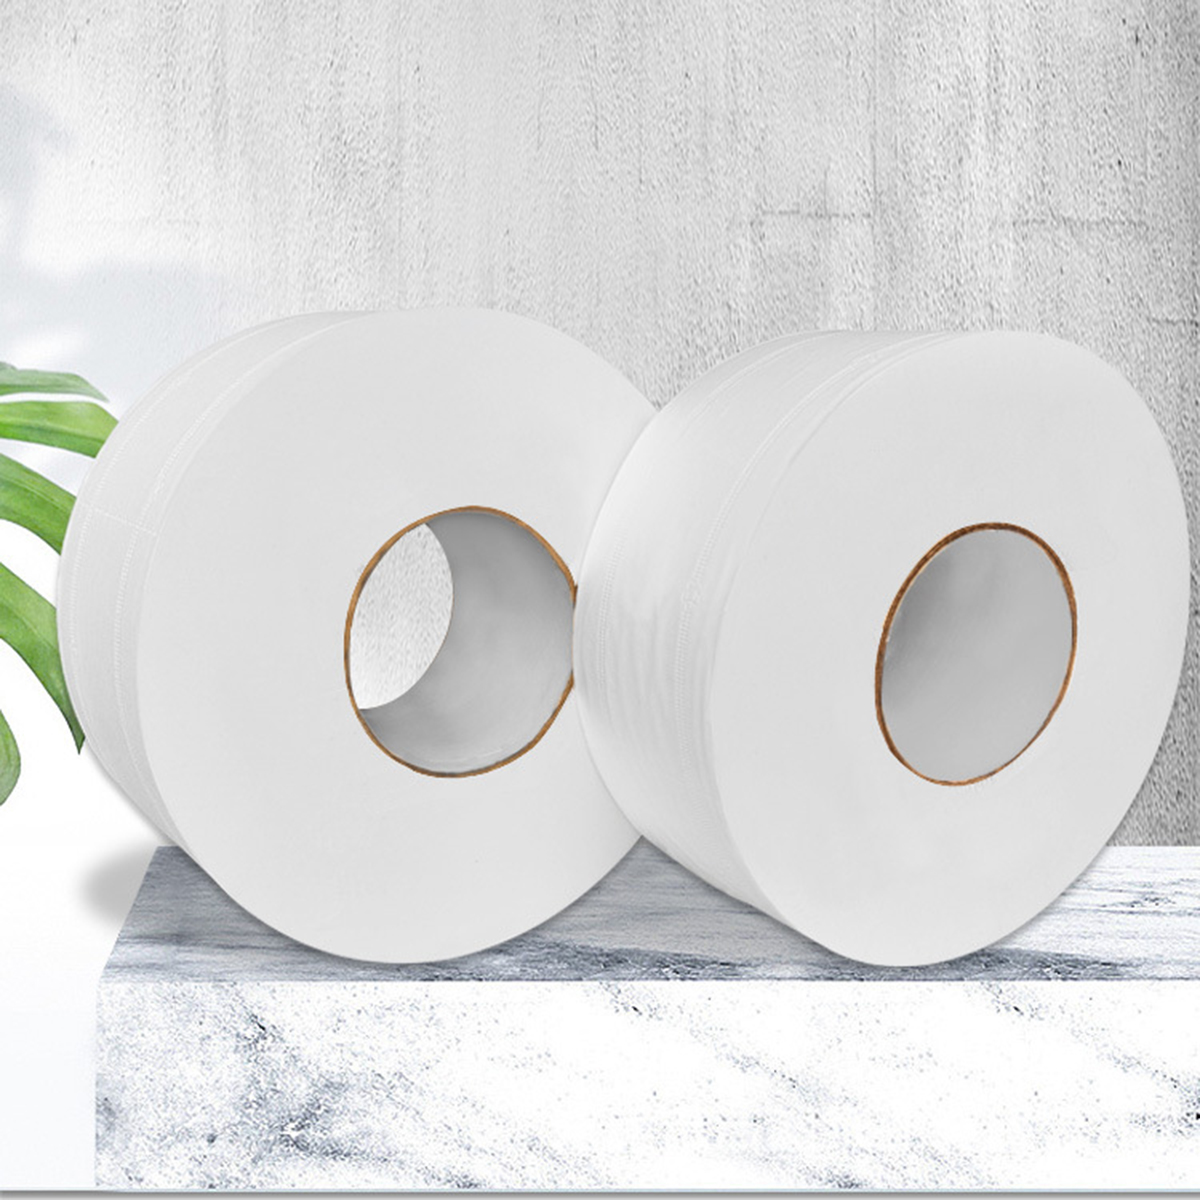 AHOME7 4 Rolls 4 Layers 90mm*130mm Wood Pulp Bath Tissue Paper Household Toilet Paper Roll with Core Breakpoint for Home Hotel Supermarket 500g